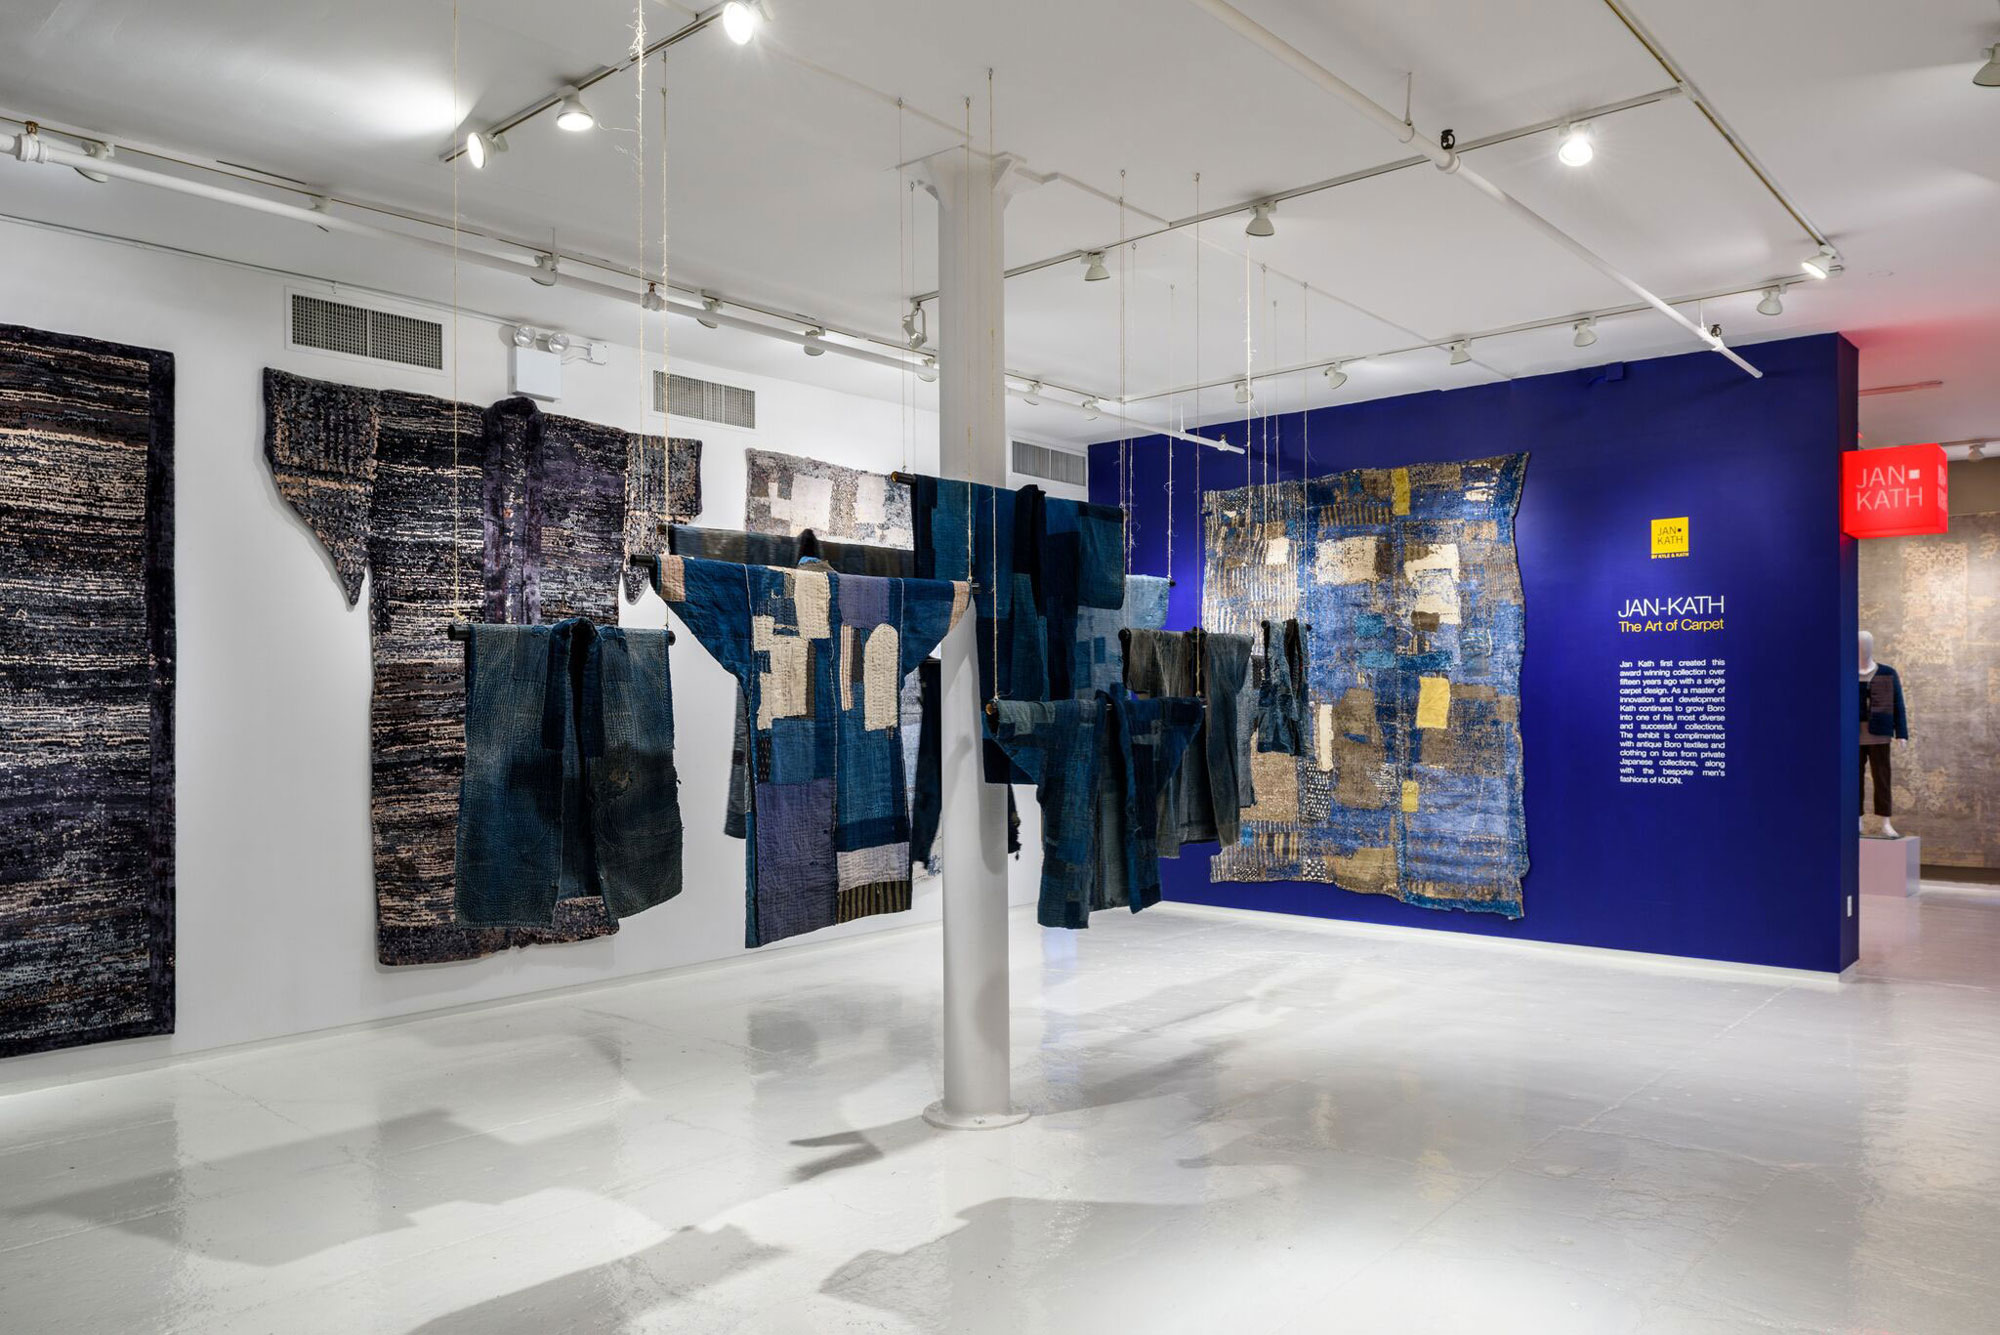 Jan Kath Design jan kath exhibits rug collection inspired by japanese boro textiles